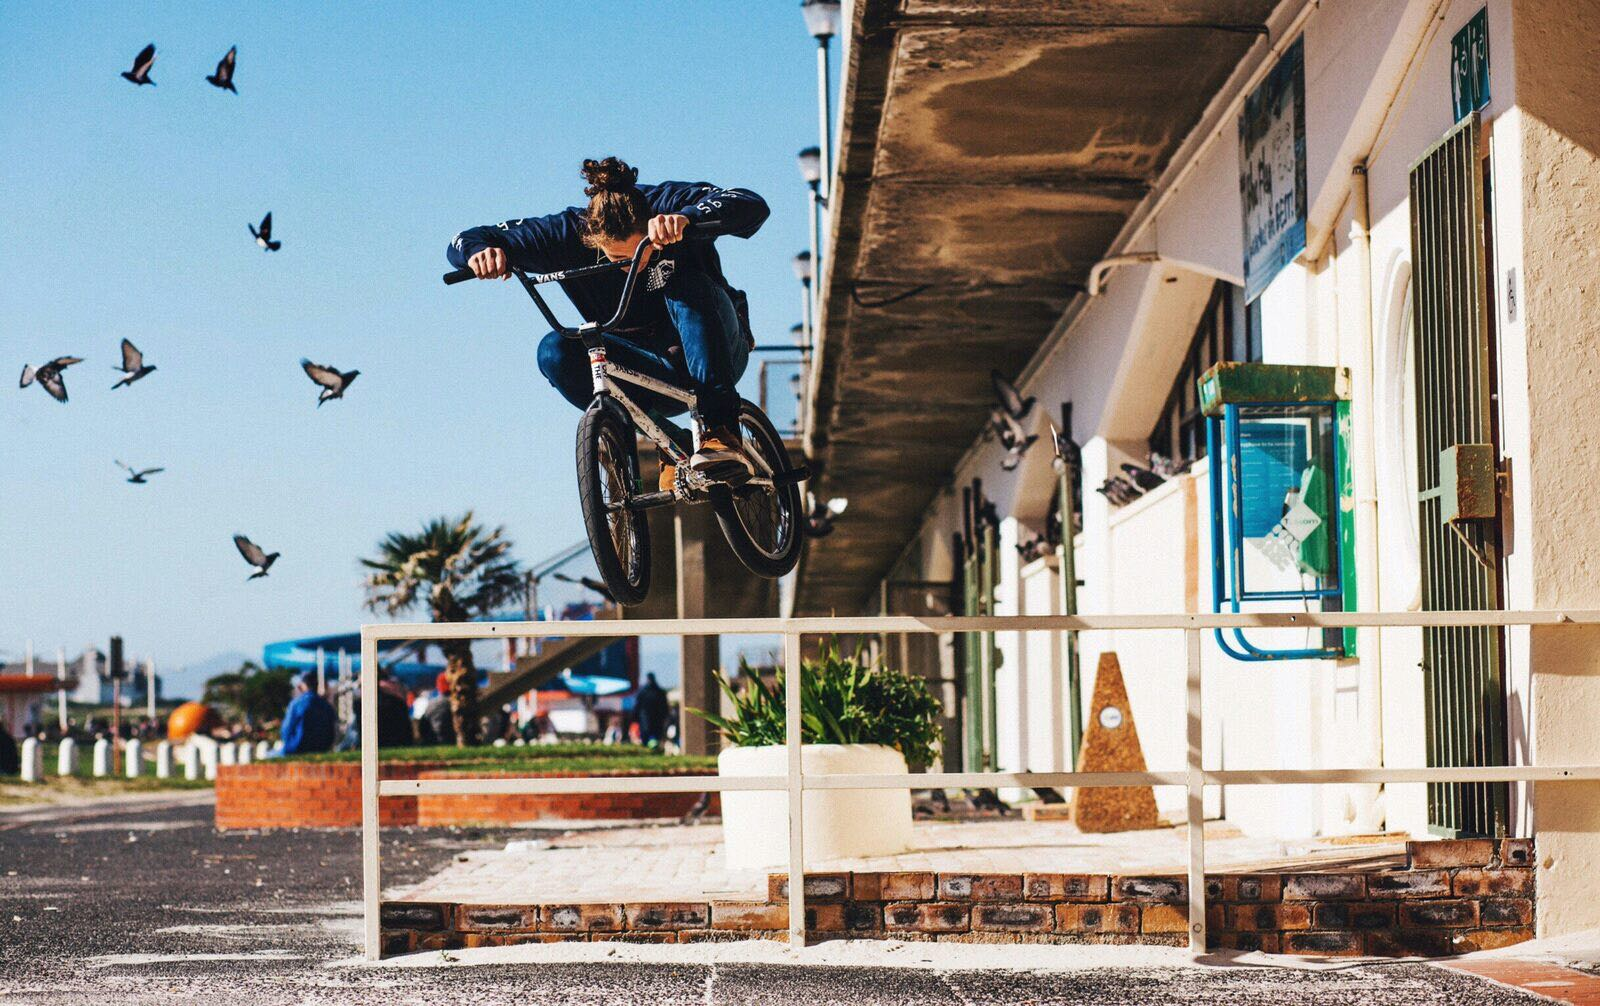 BMX skills by Cape Town's Brandon Blight